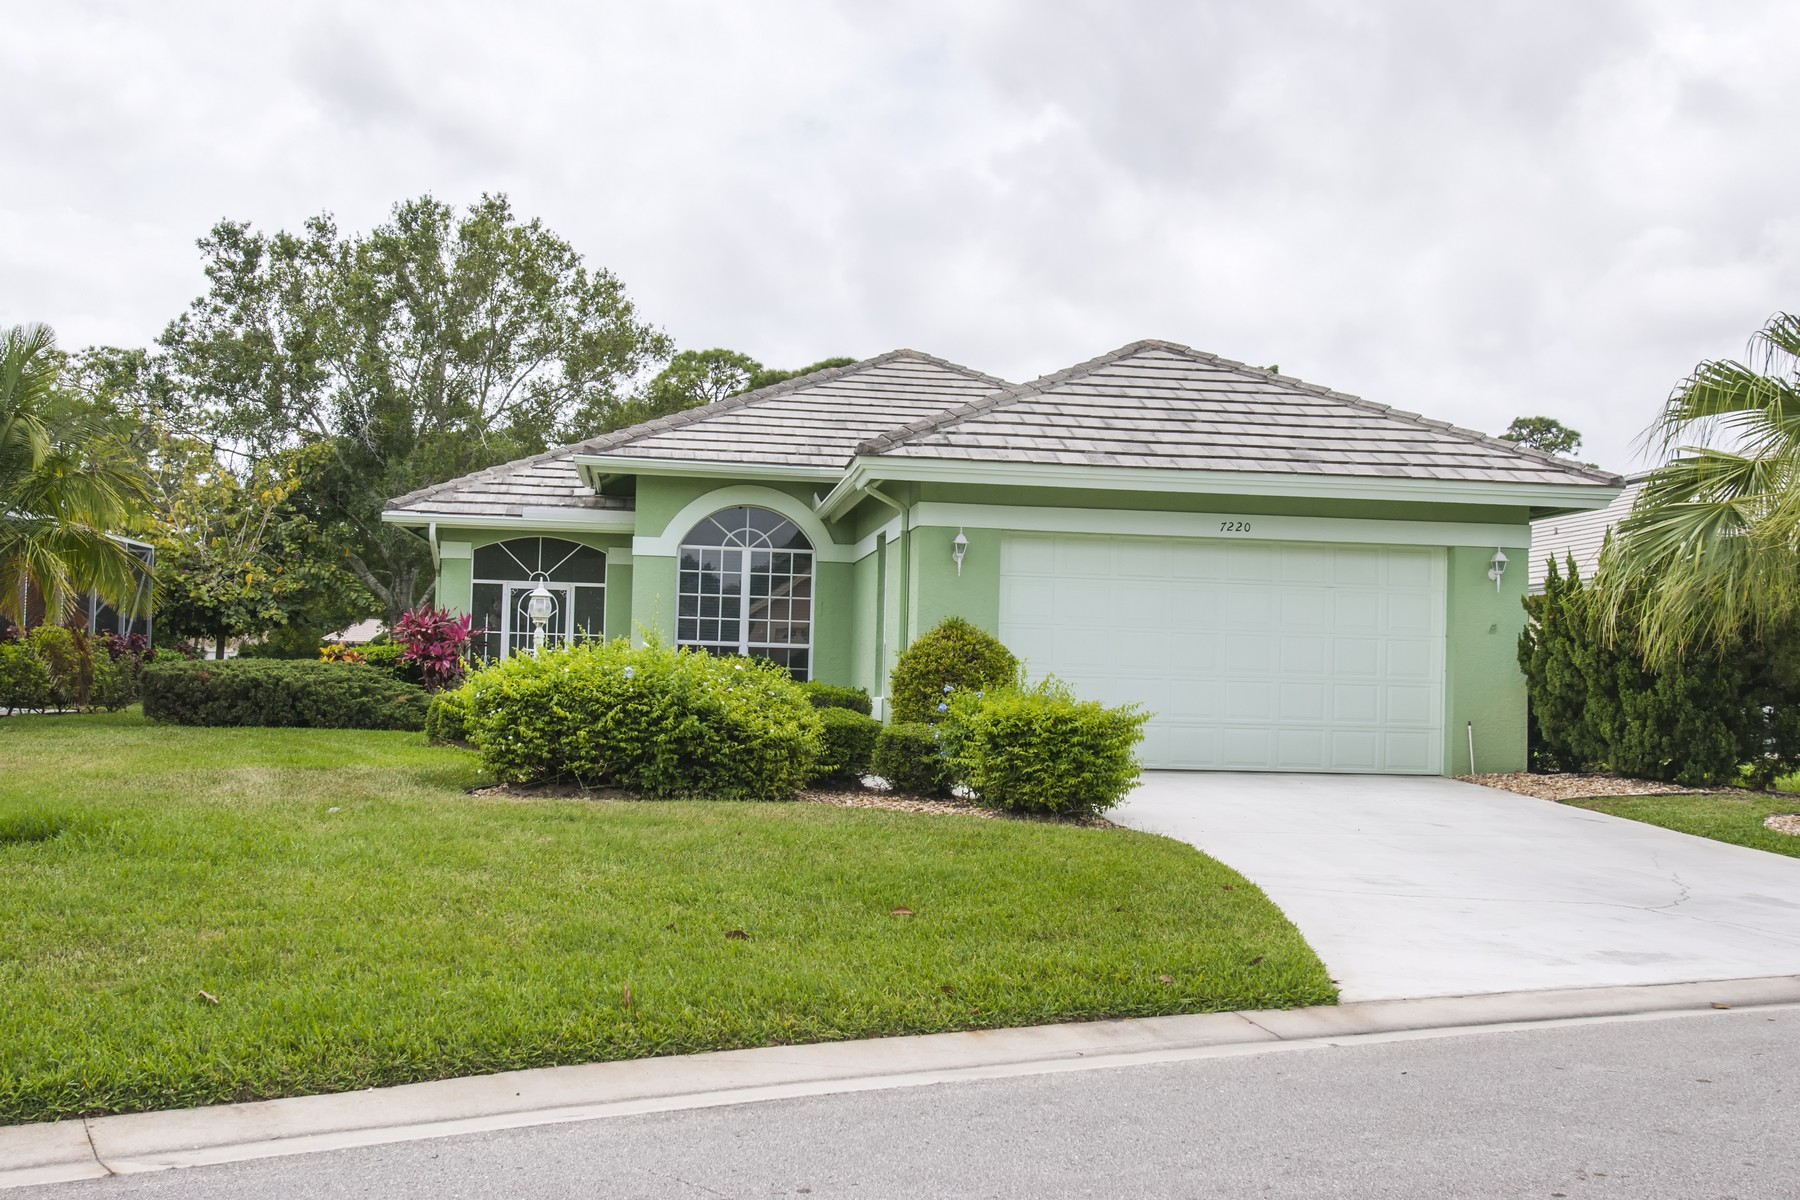 Vivienda unifamiliar por un Venta en Private Setting with Lake and Preserve Views 7220 Marsh Terrace Port St. Lucie, Florida 34986 Estados Unidos